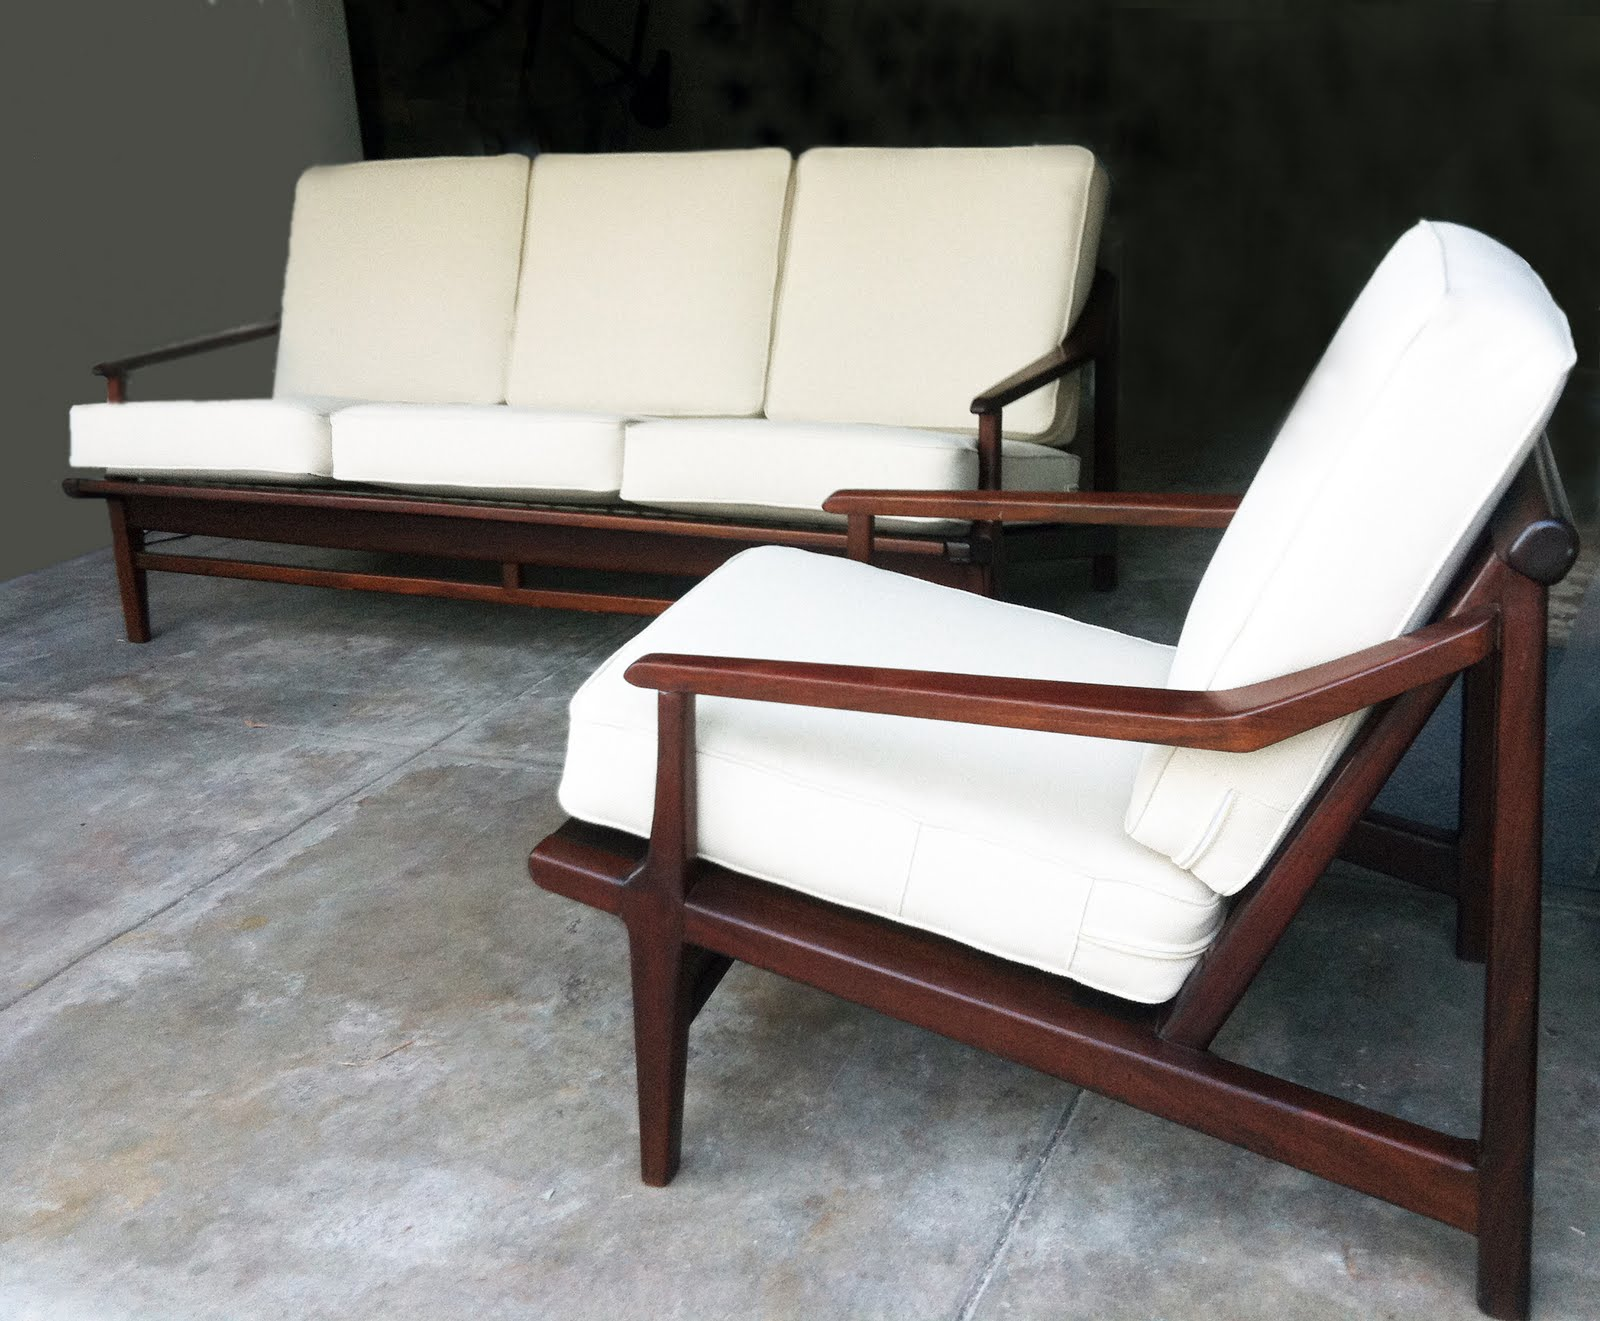 This Is A Beautiful Walnut Mid Century Modern Couch And Chair Set. The  Cushions Are Brand New And Professionally Made With Bone/off White Tweed  Fabric ...